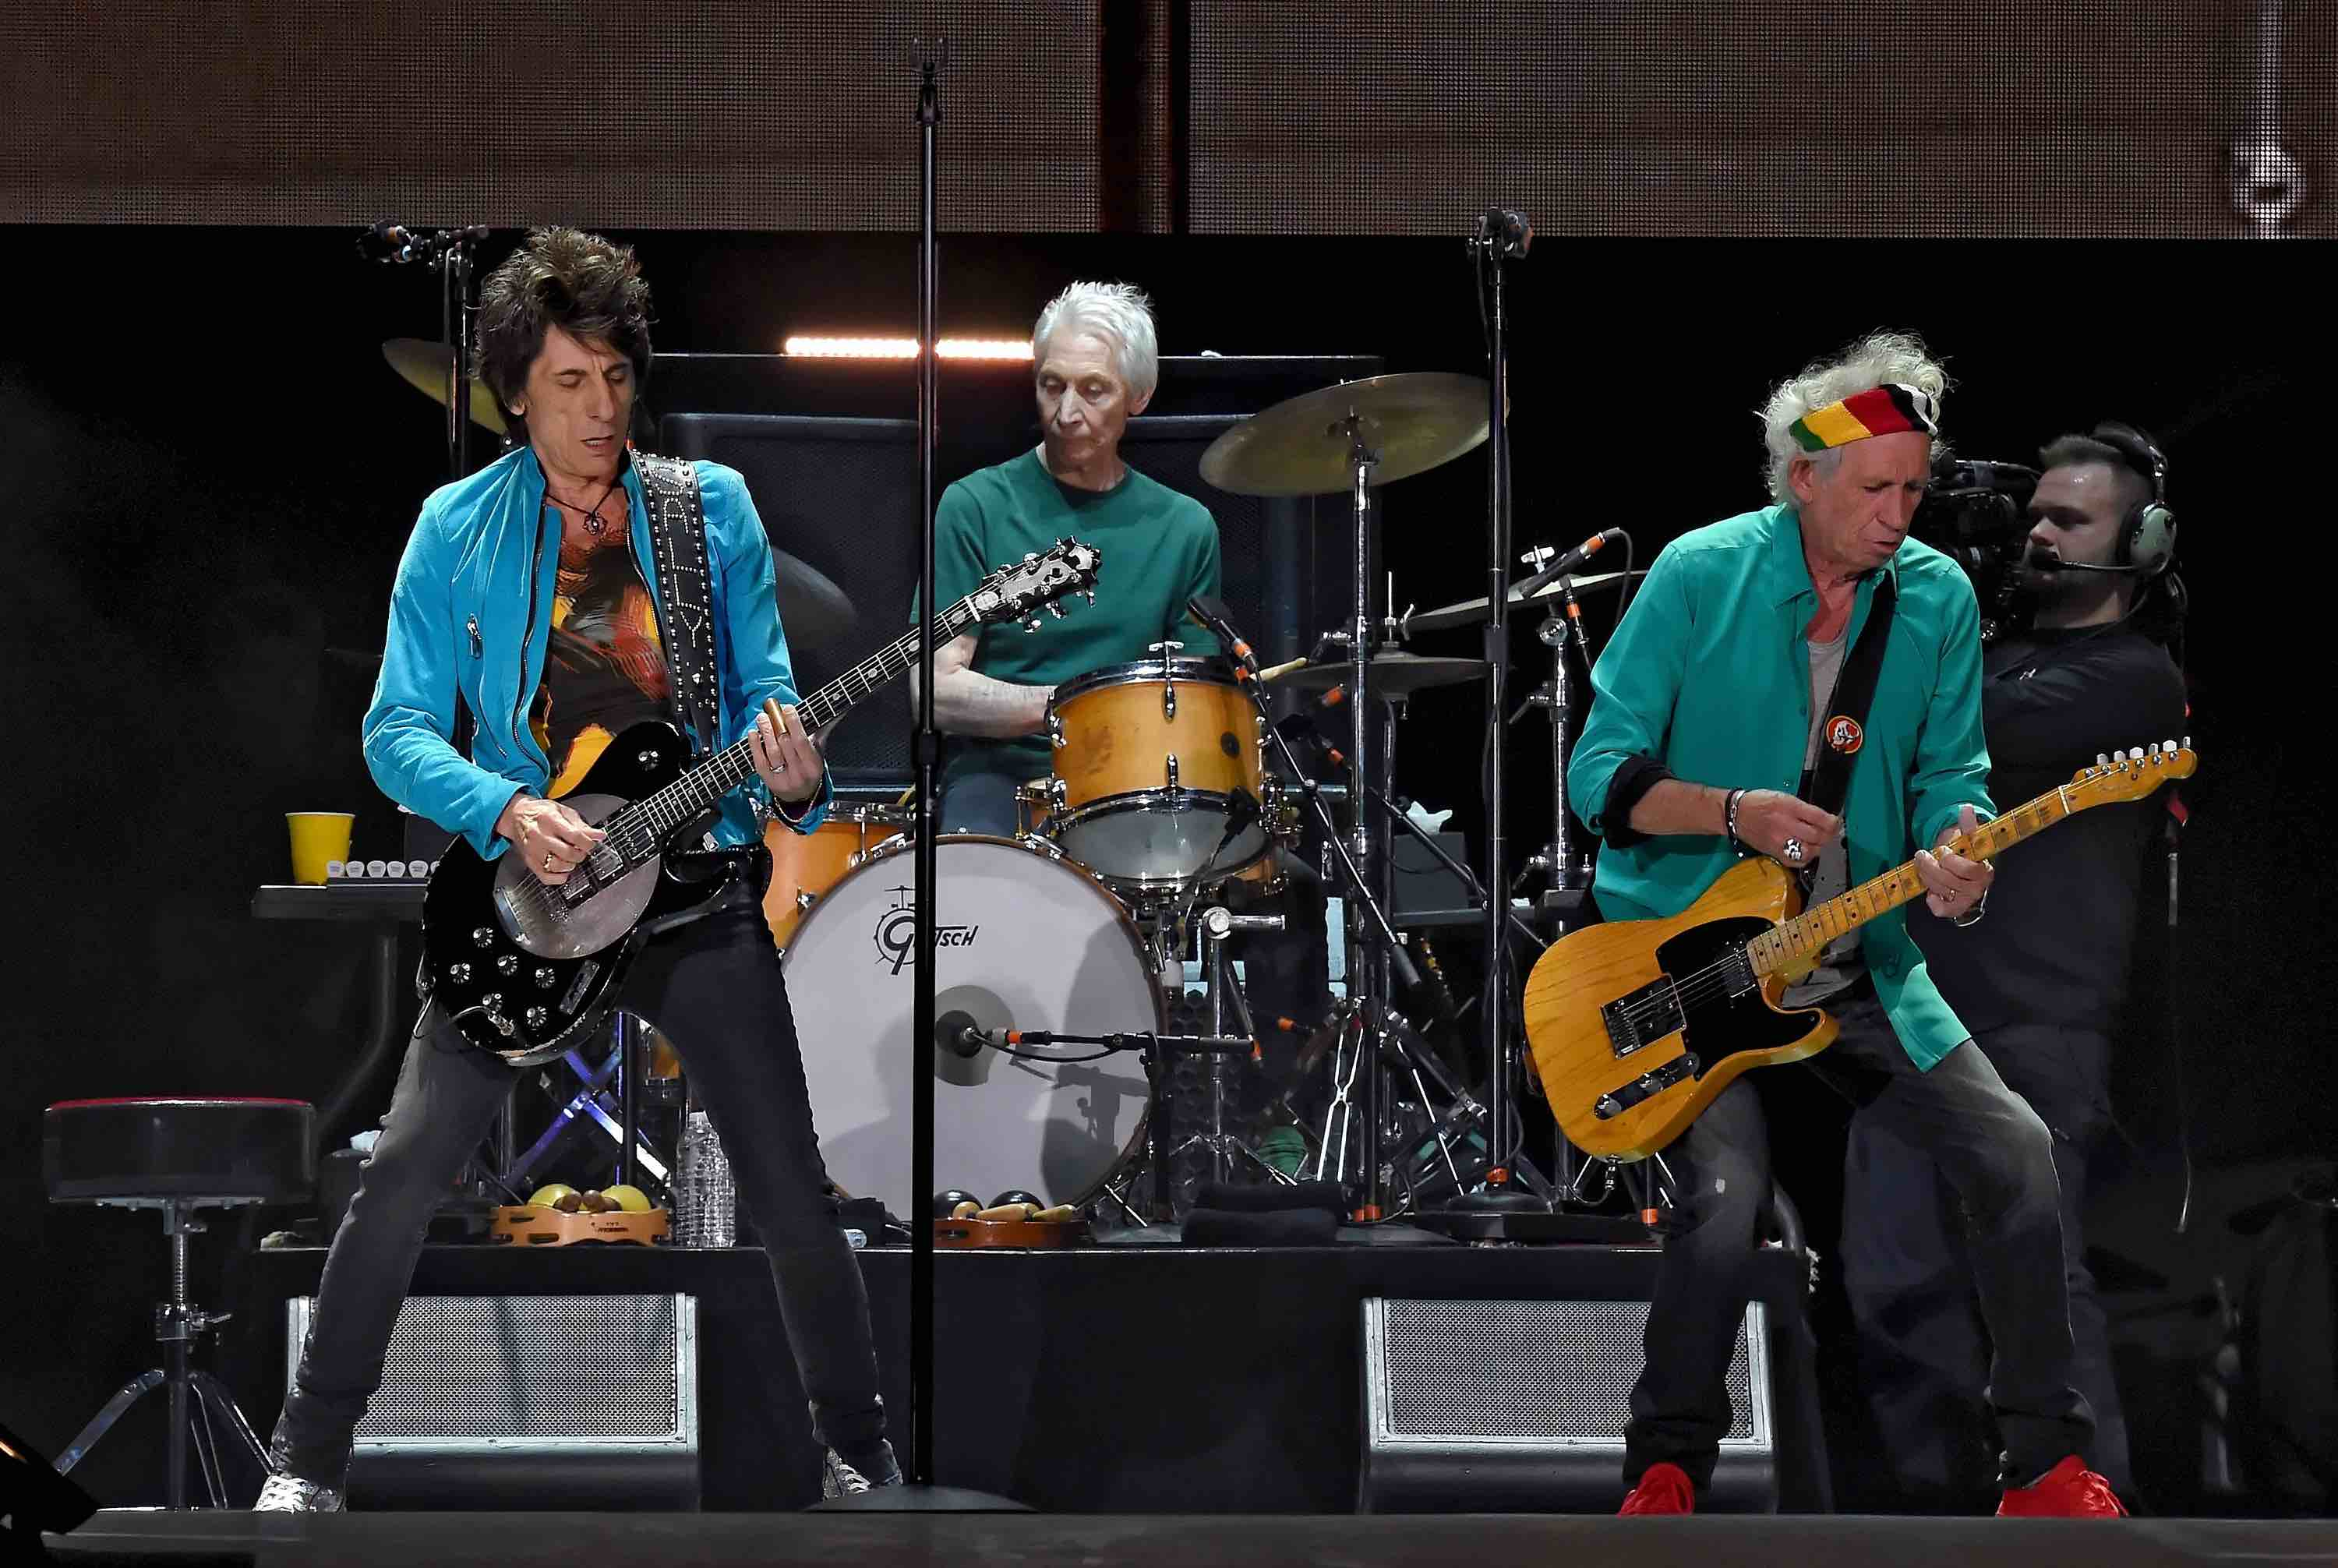 INDIO, CA - OCTOBER 07:  Musicians Ronnie Wood, Charlie Watts and Keith Richards of The Rolling Stones perform onstage during